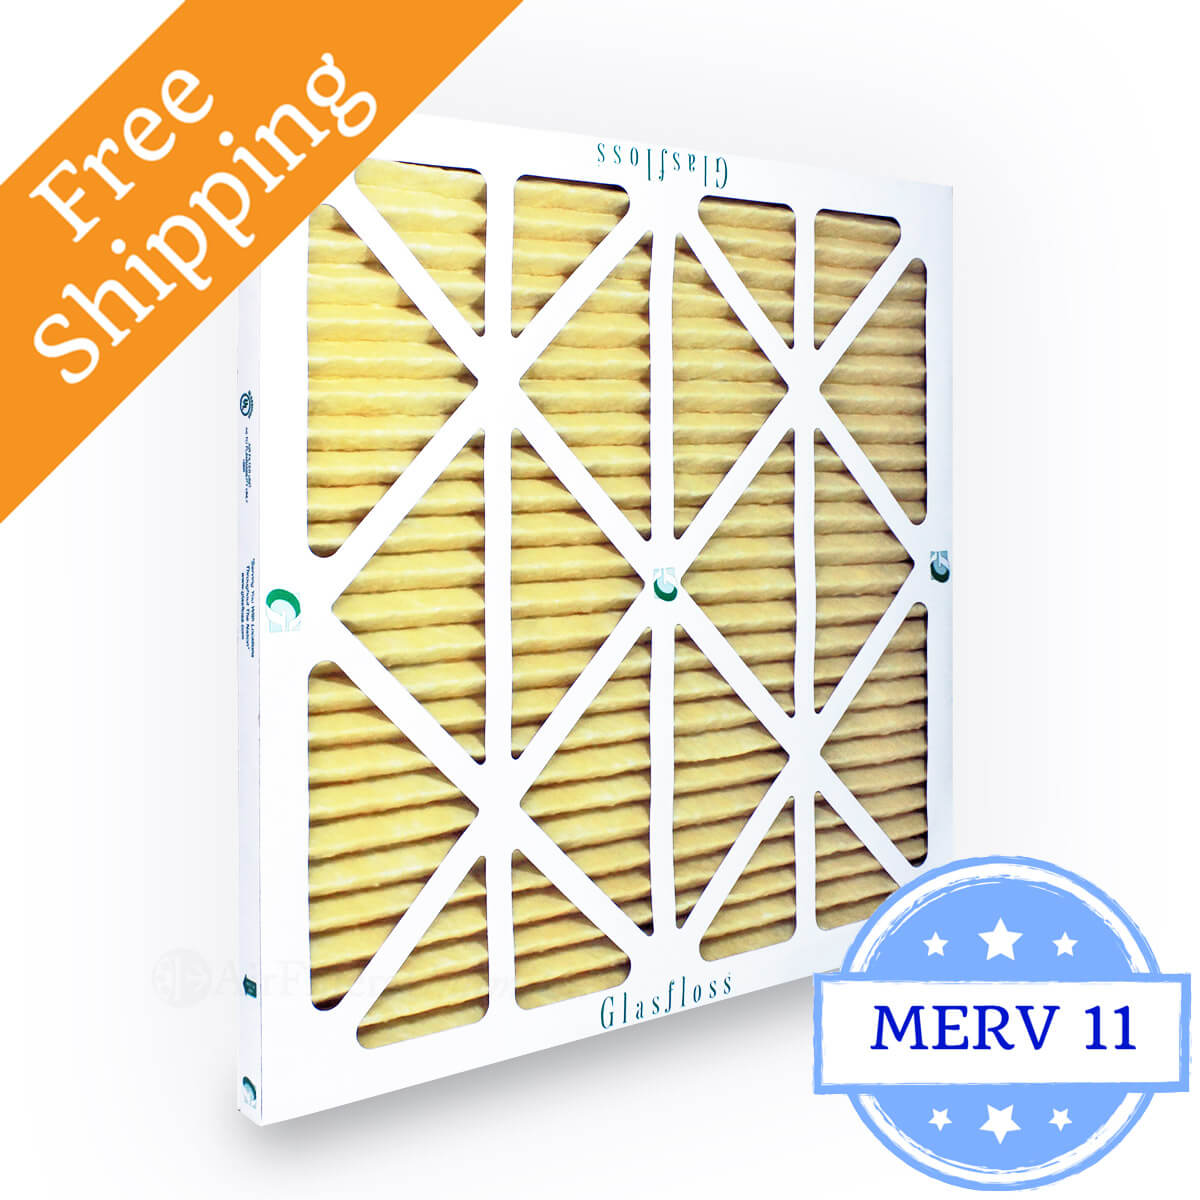 Glasfloss 14x14x1 Air Filter MR-11 Series